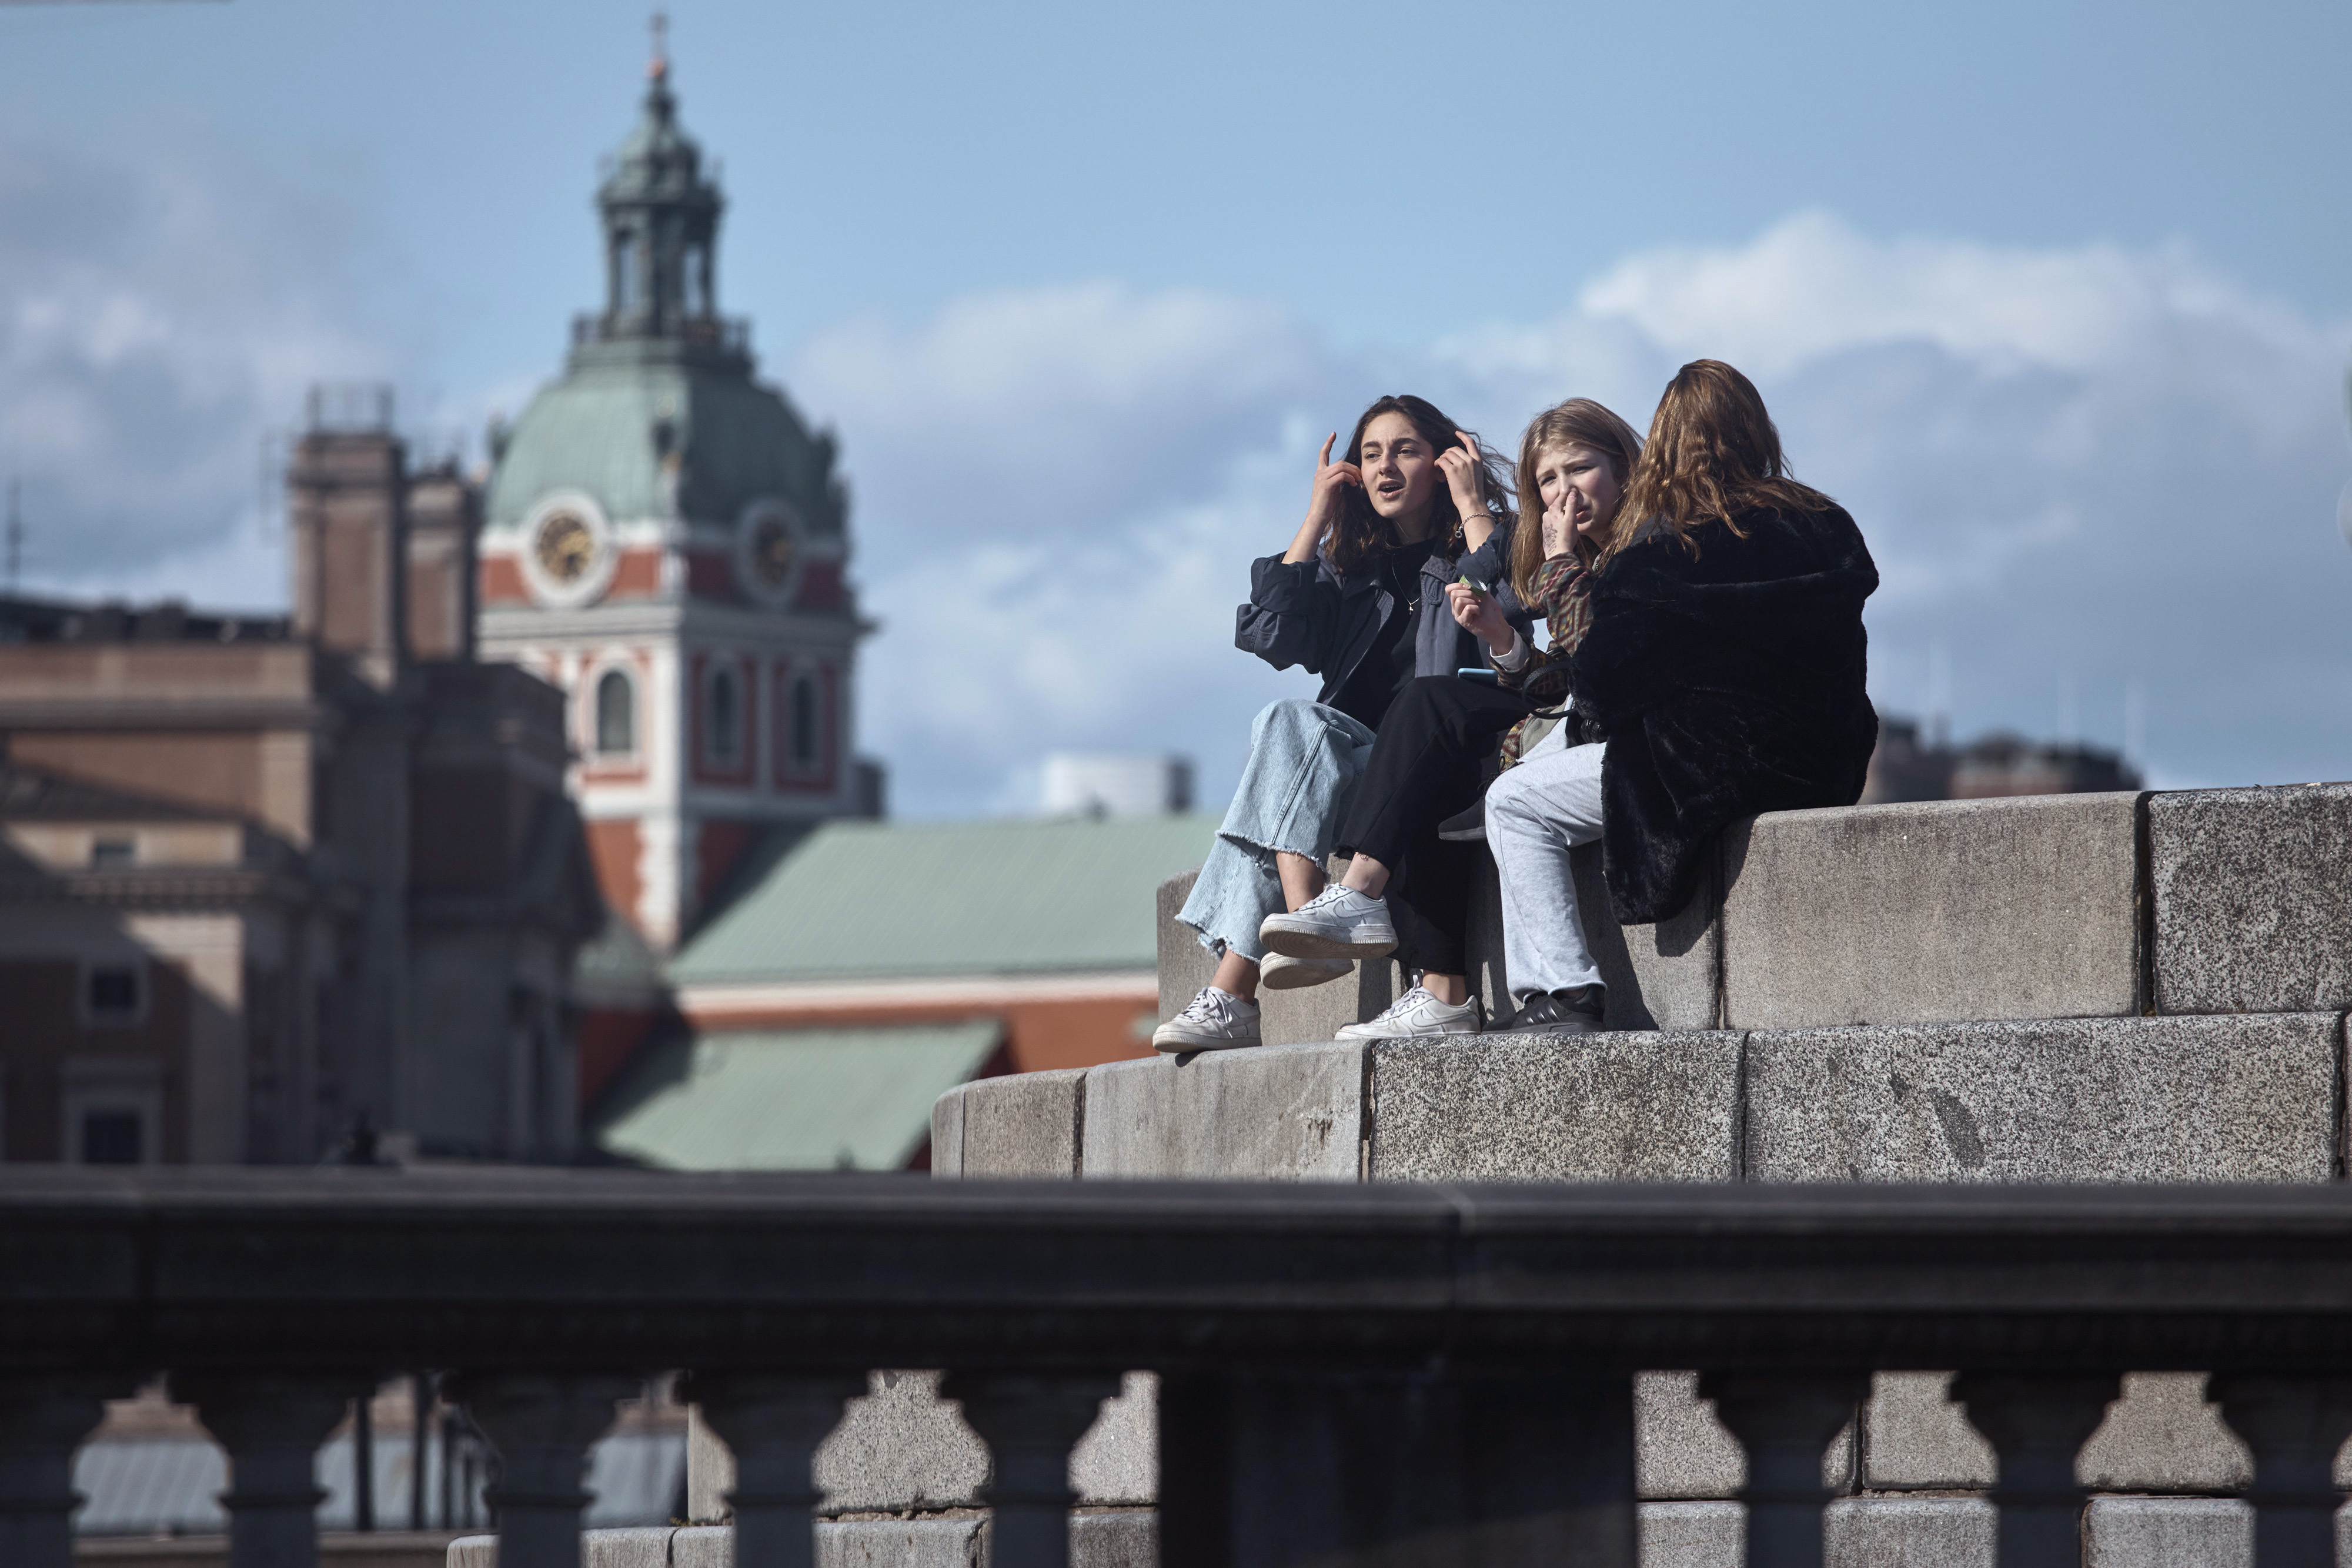 Young people socialise together in Stockholm